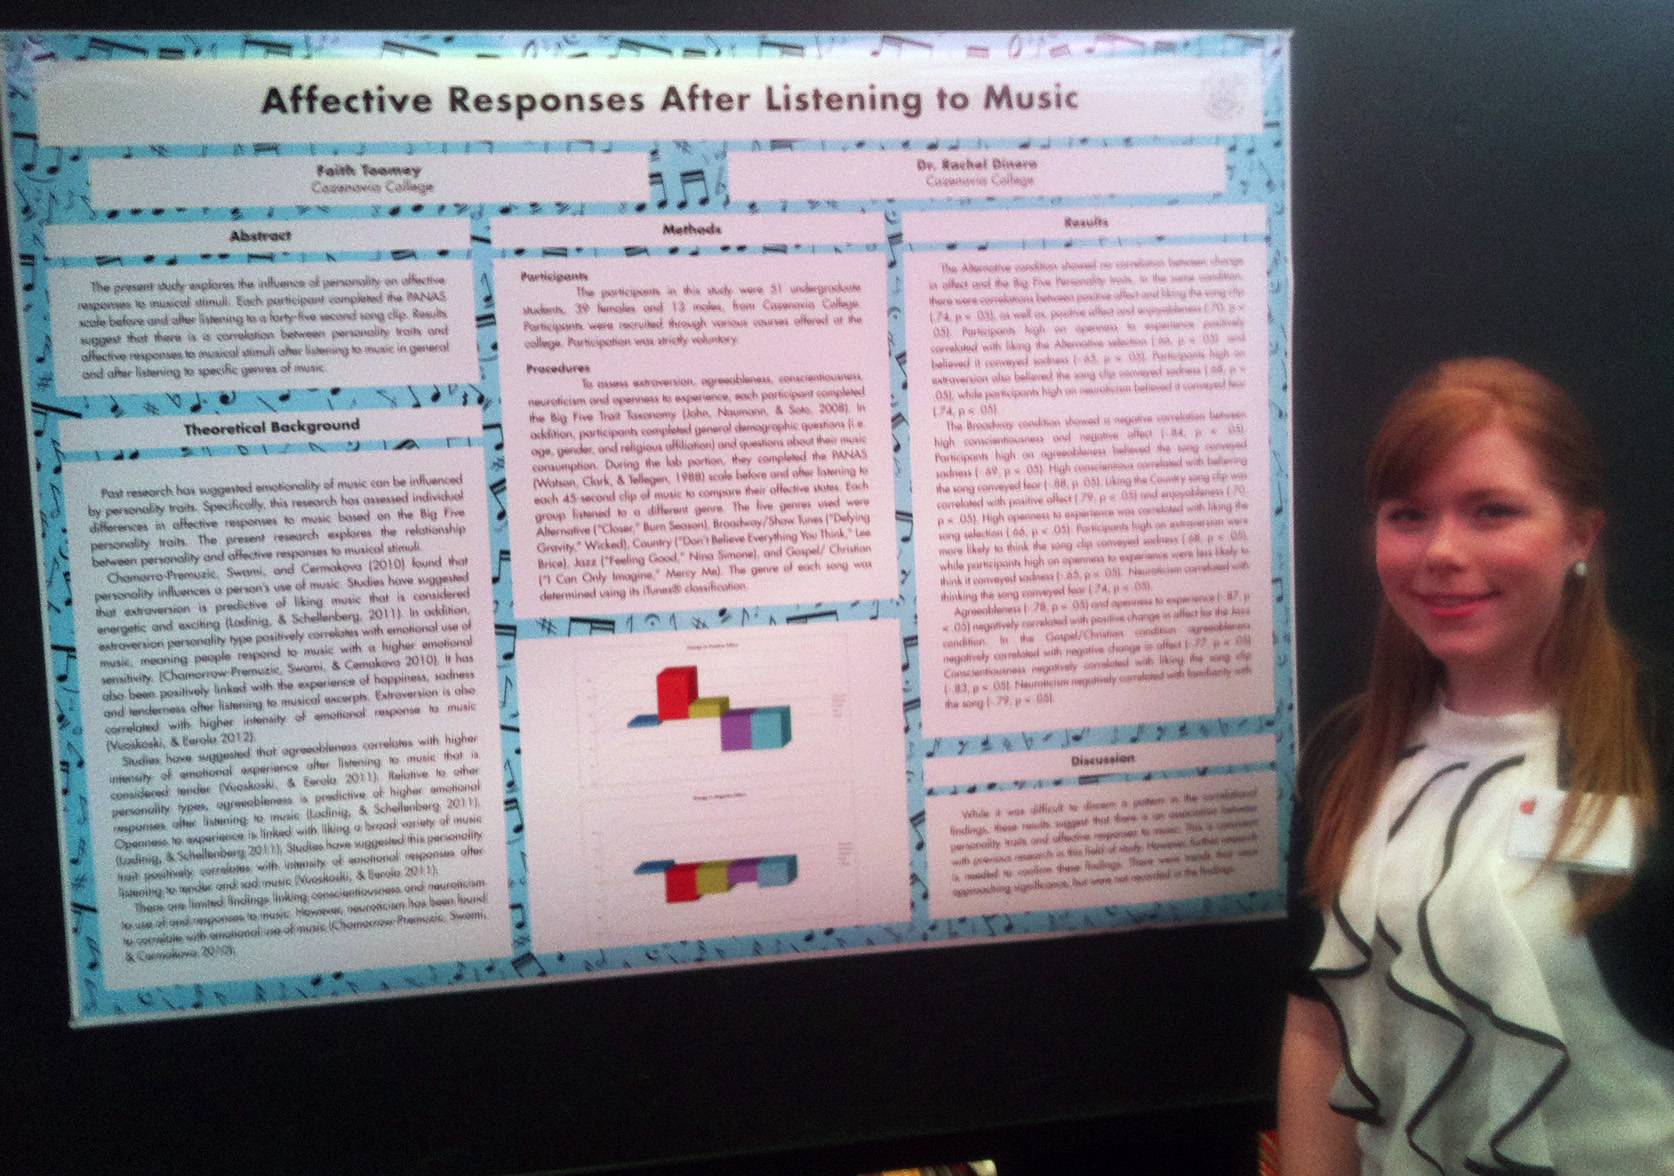 Faith Toomey Presents Research at National Conference